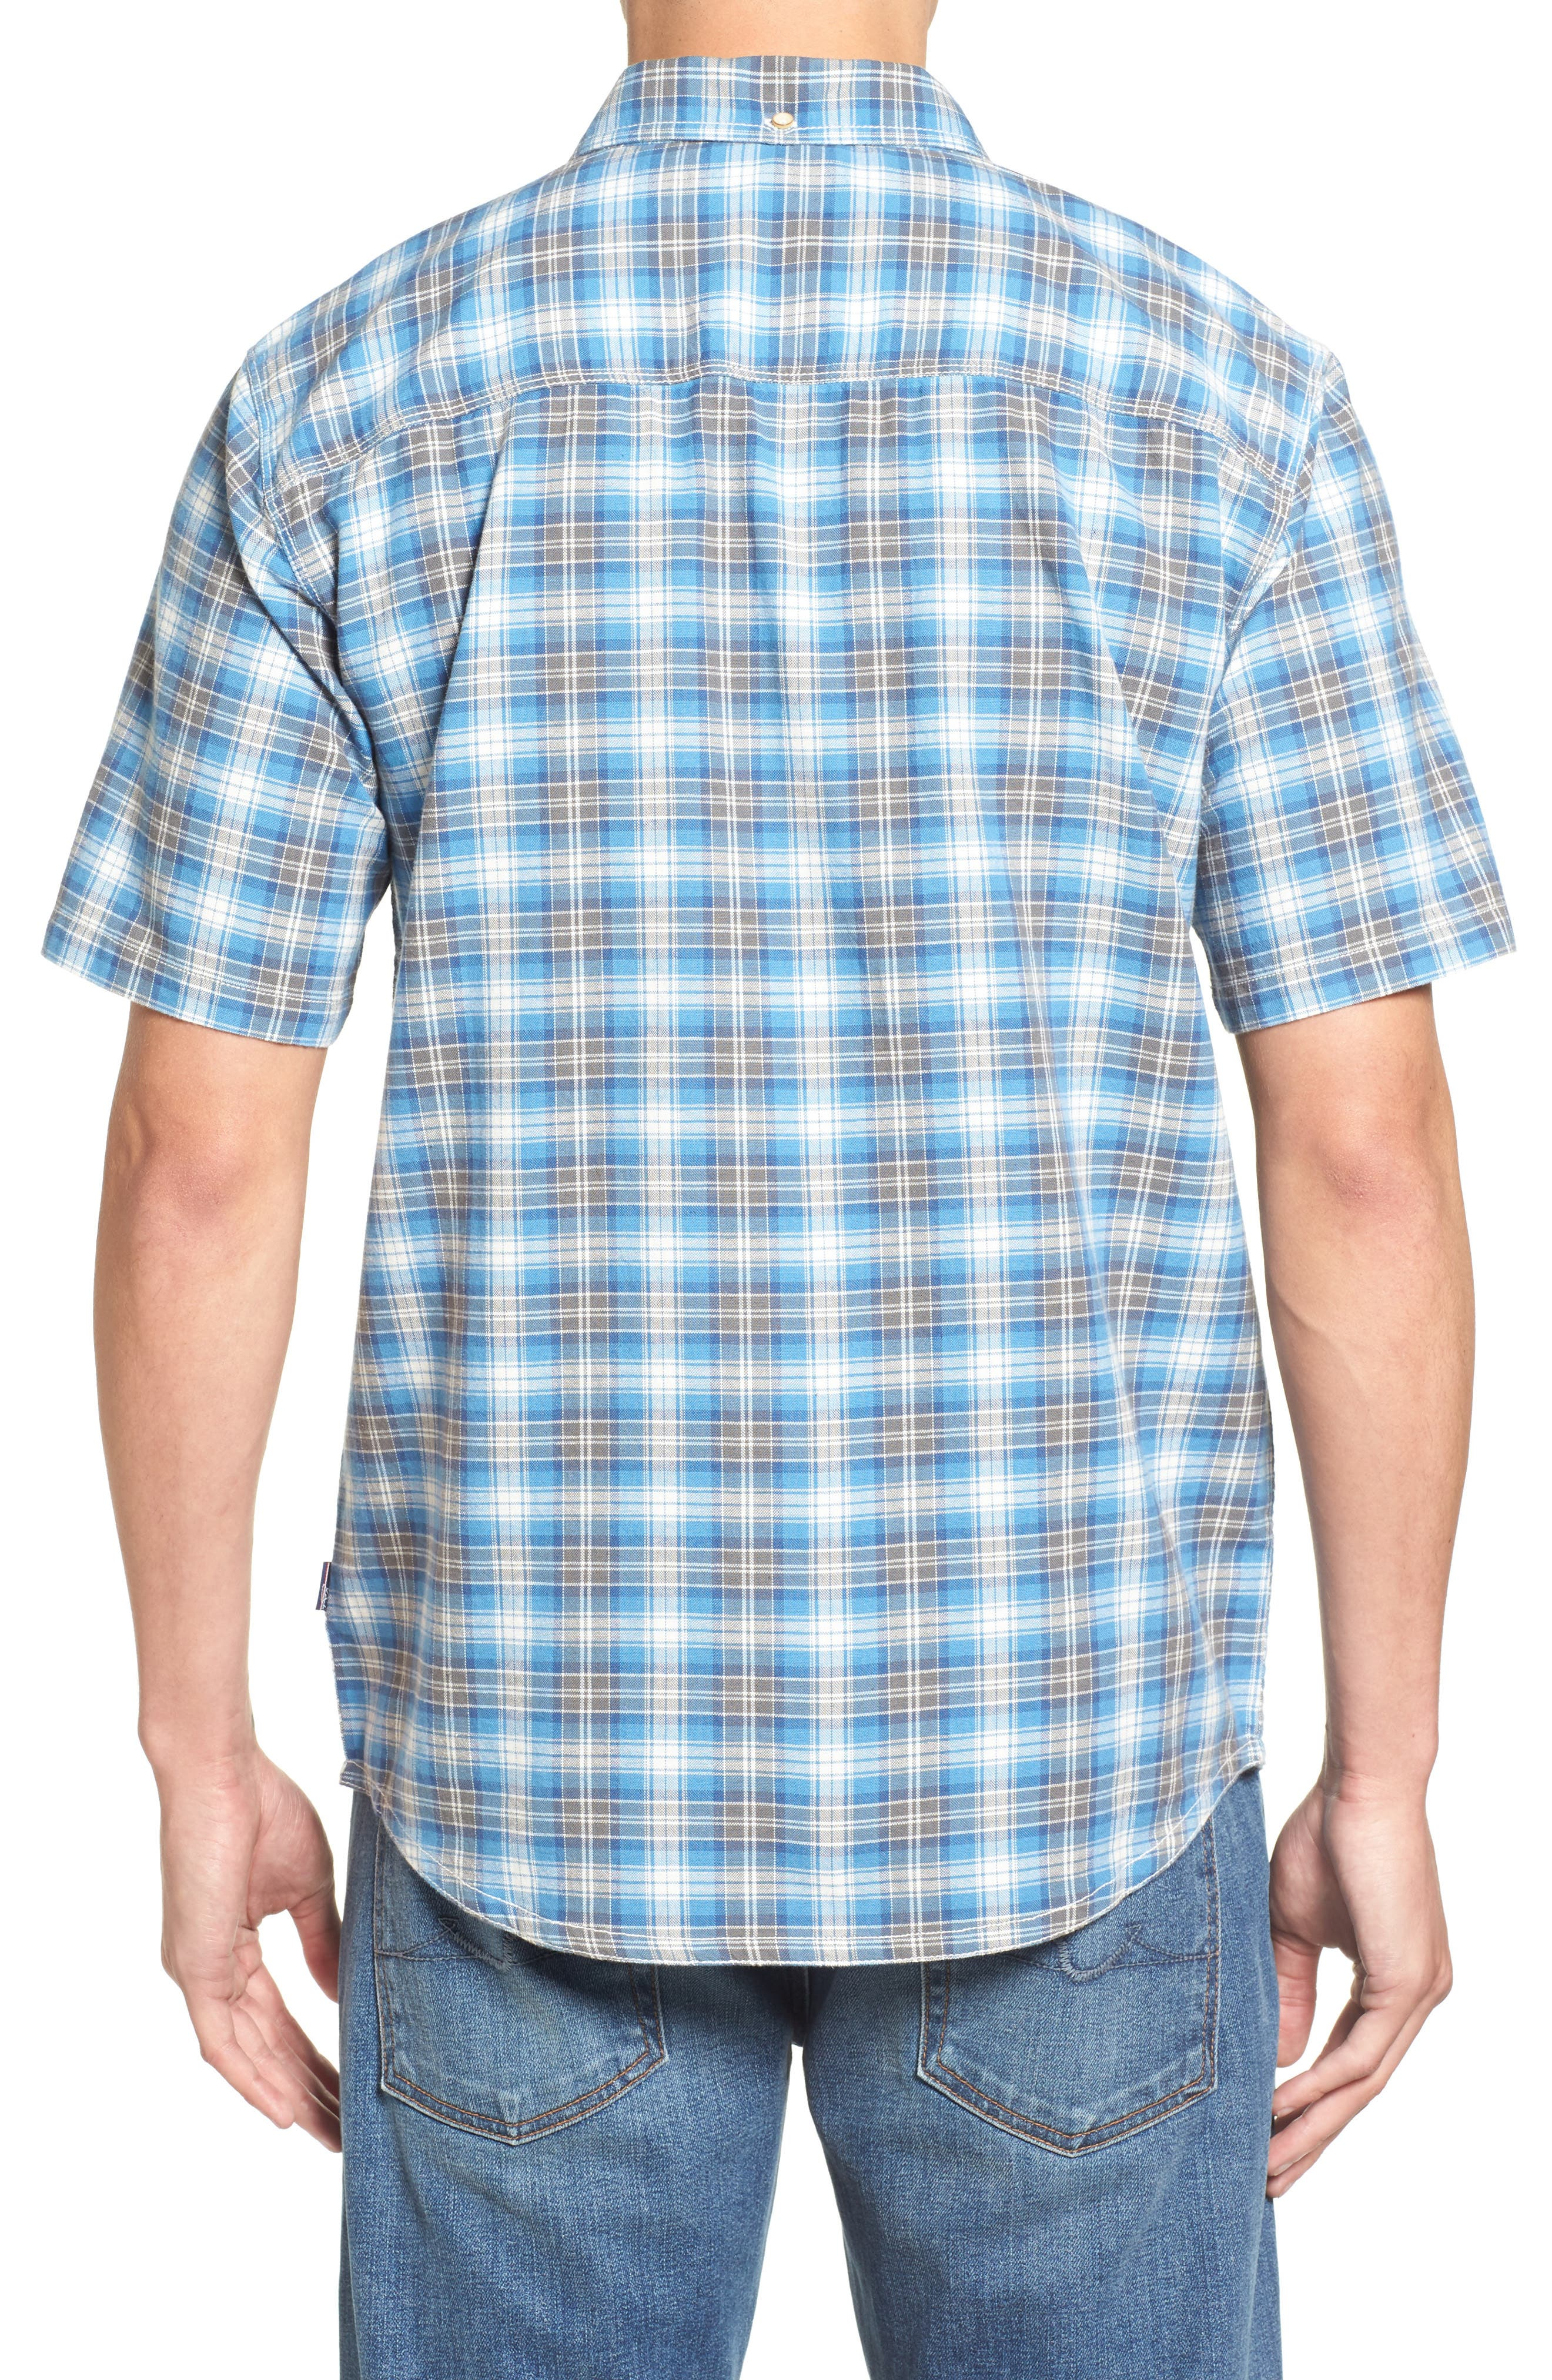 Voyager Plaid Sport Shirt,                             Alternate thumbnail 4, color,